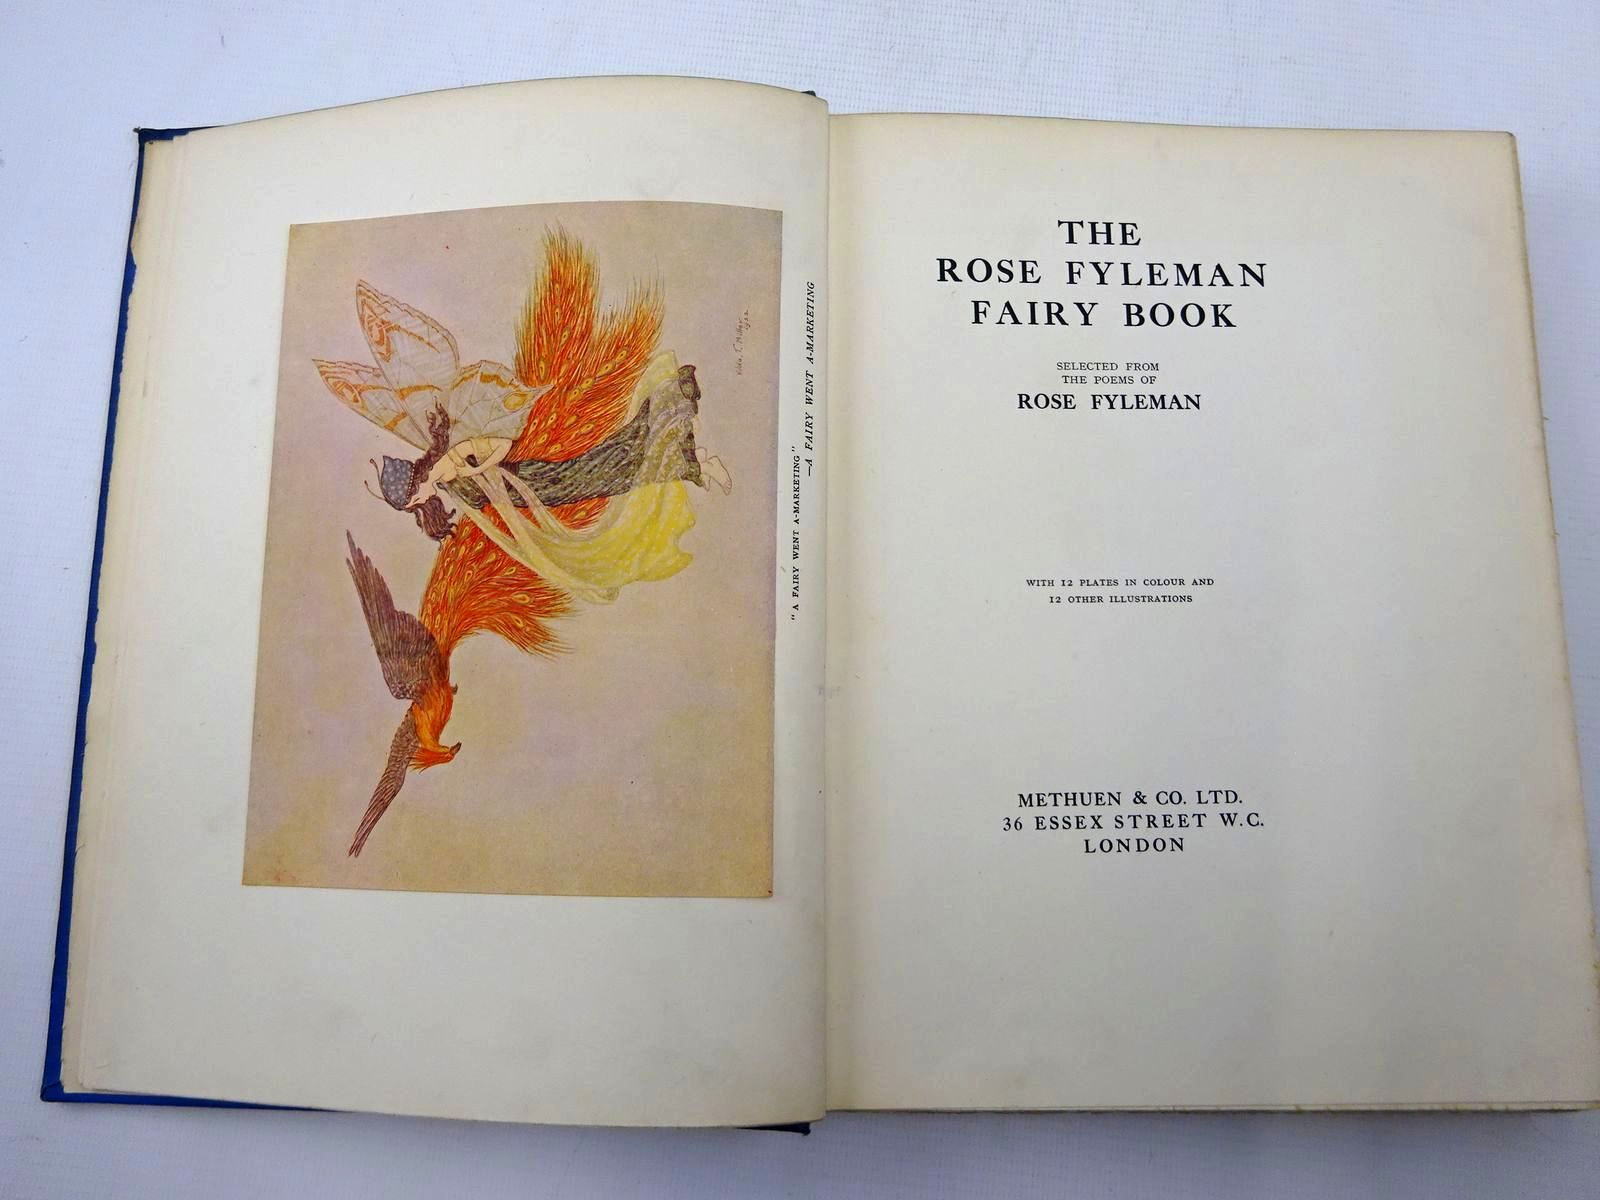 Photo of THE ROSE FYLEMAN FAIRY BOOK written by Fyleman, Rose illustrated by Miller, Hilda T. published by Methuen & Co. Ltd. (STOCK CODE: 2126378)  for sale by Stella & Rose's Books